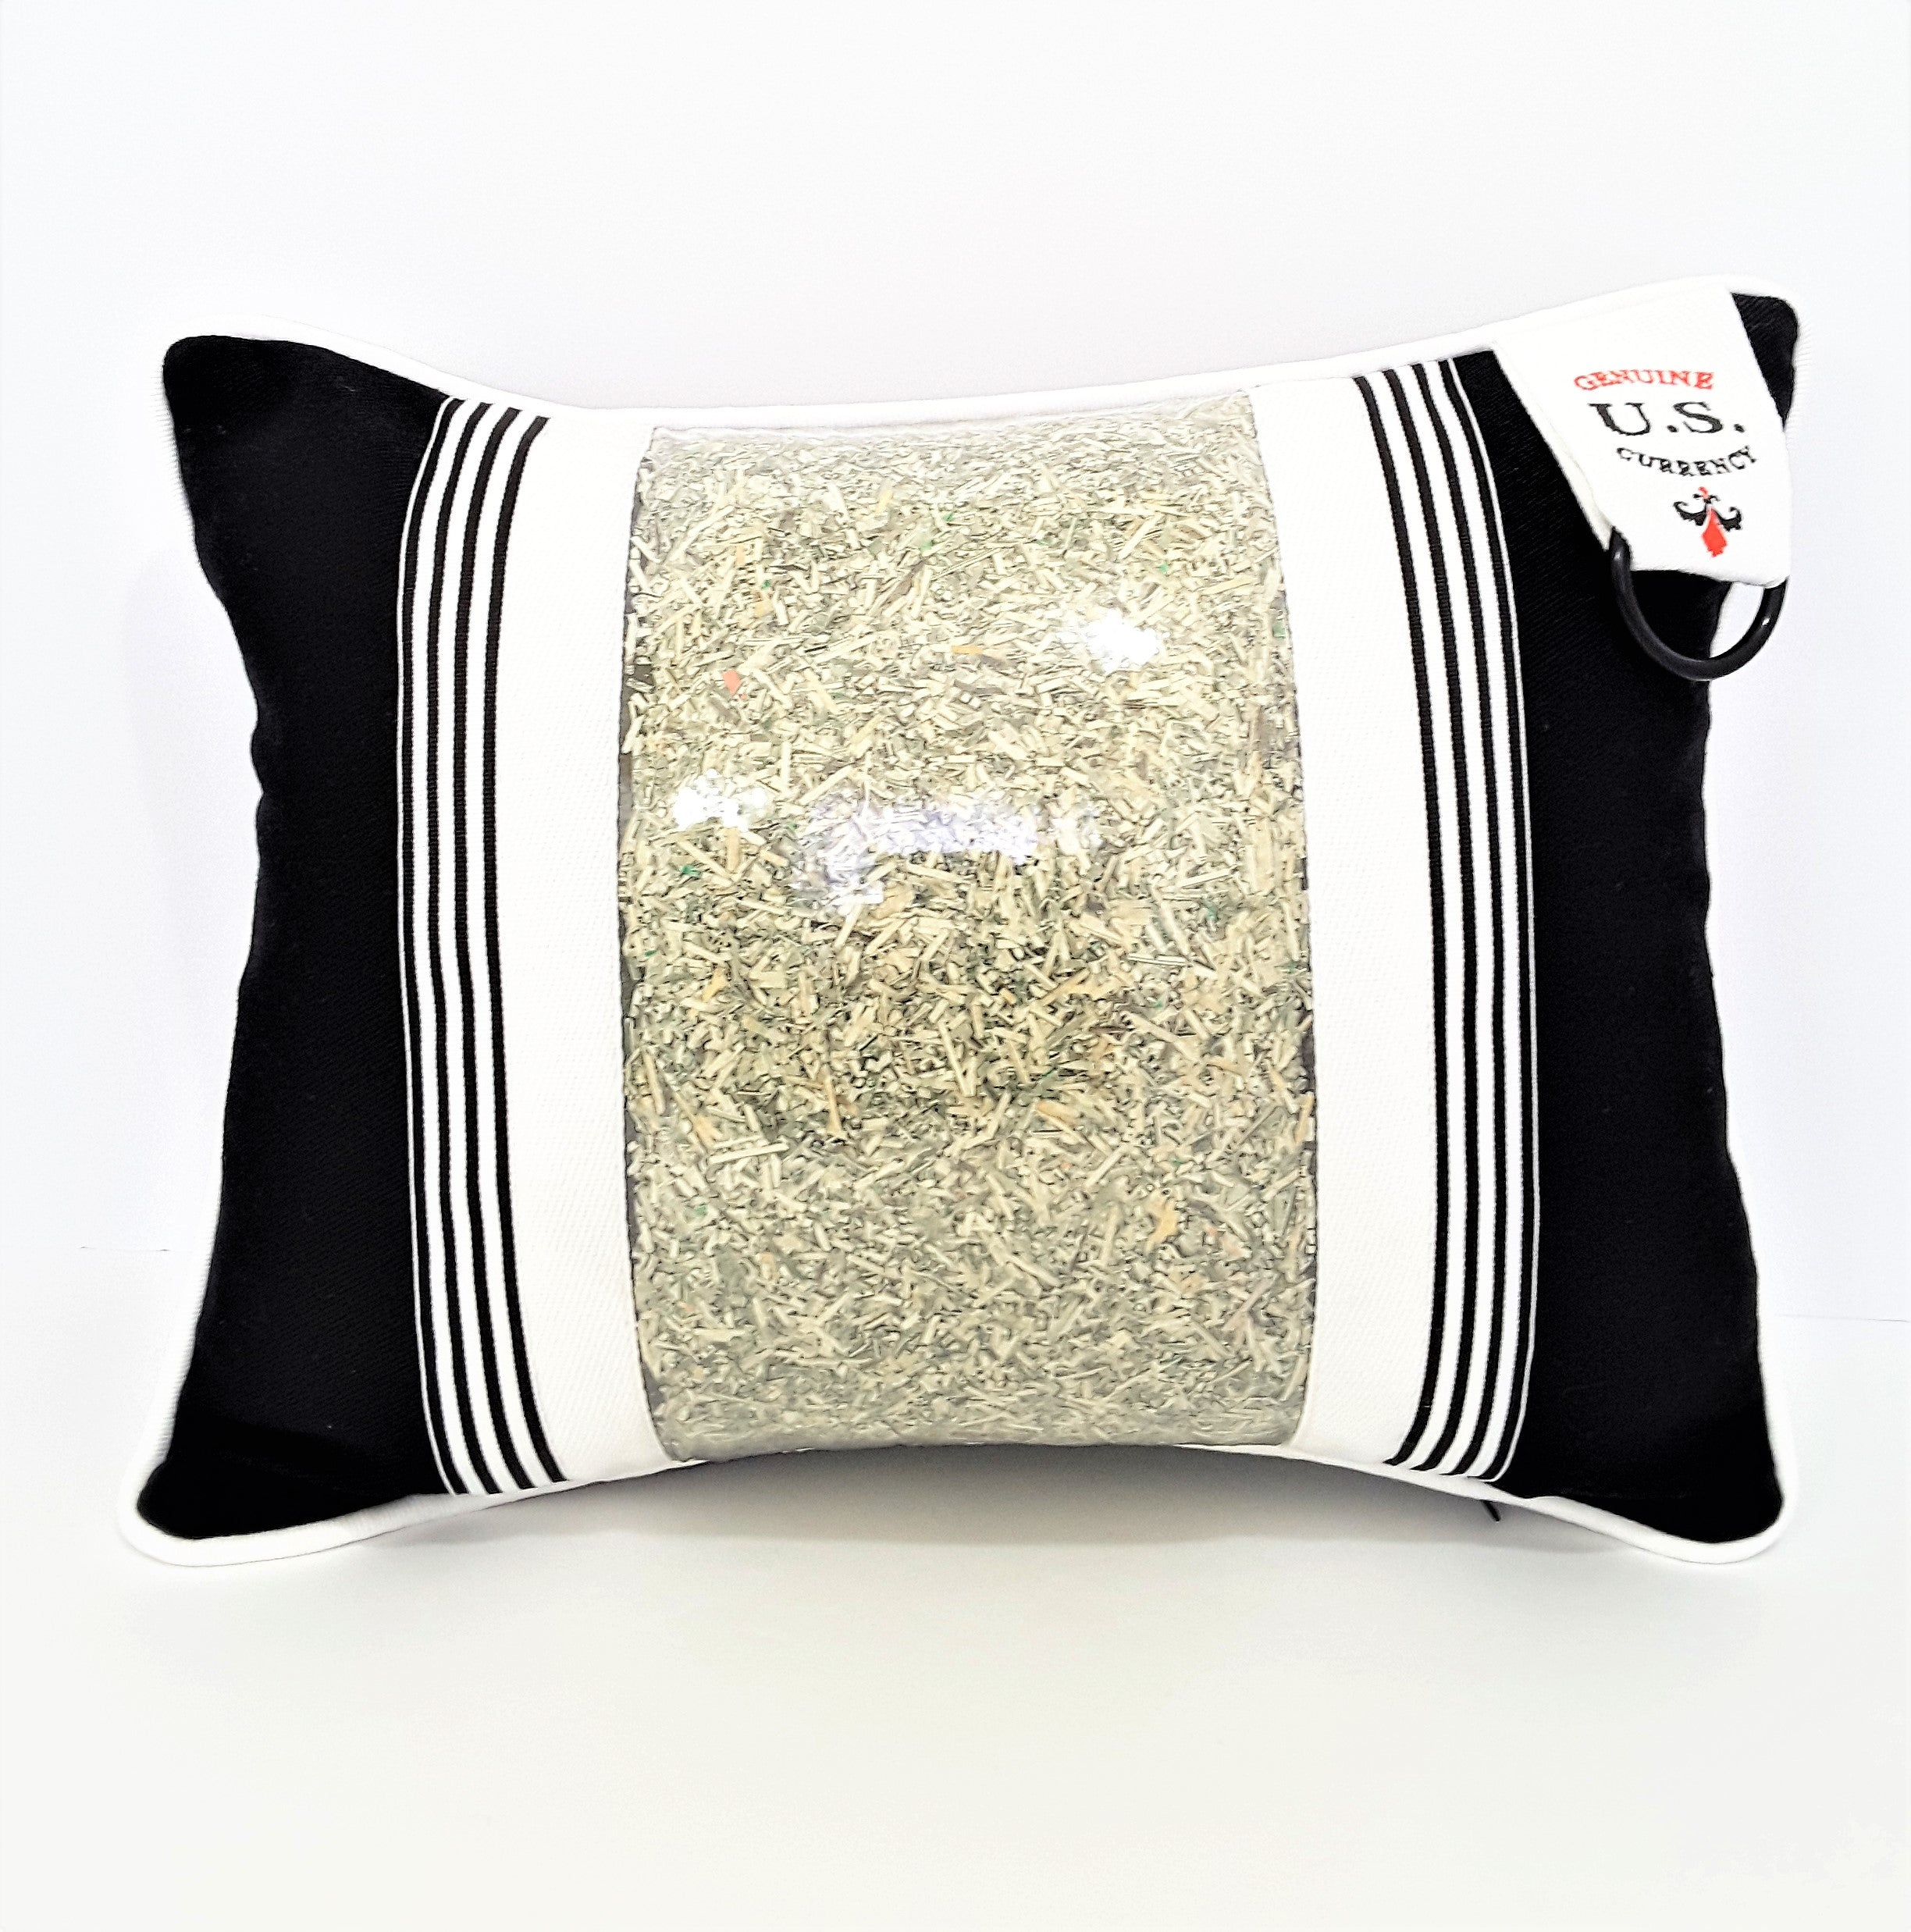 Prosperity Pillow with Genuine U.S. Currency - Free Shipping! - TheLastWordBish.com